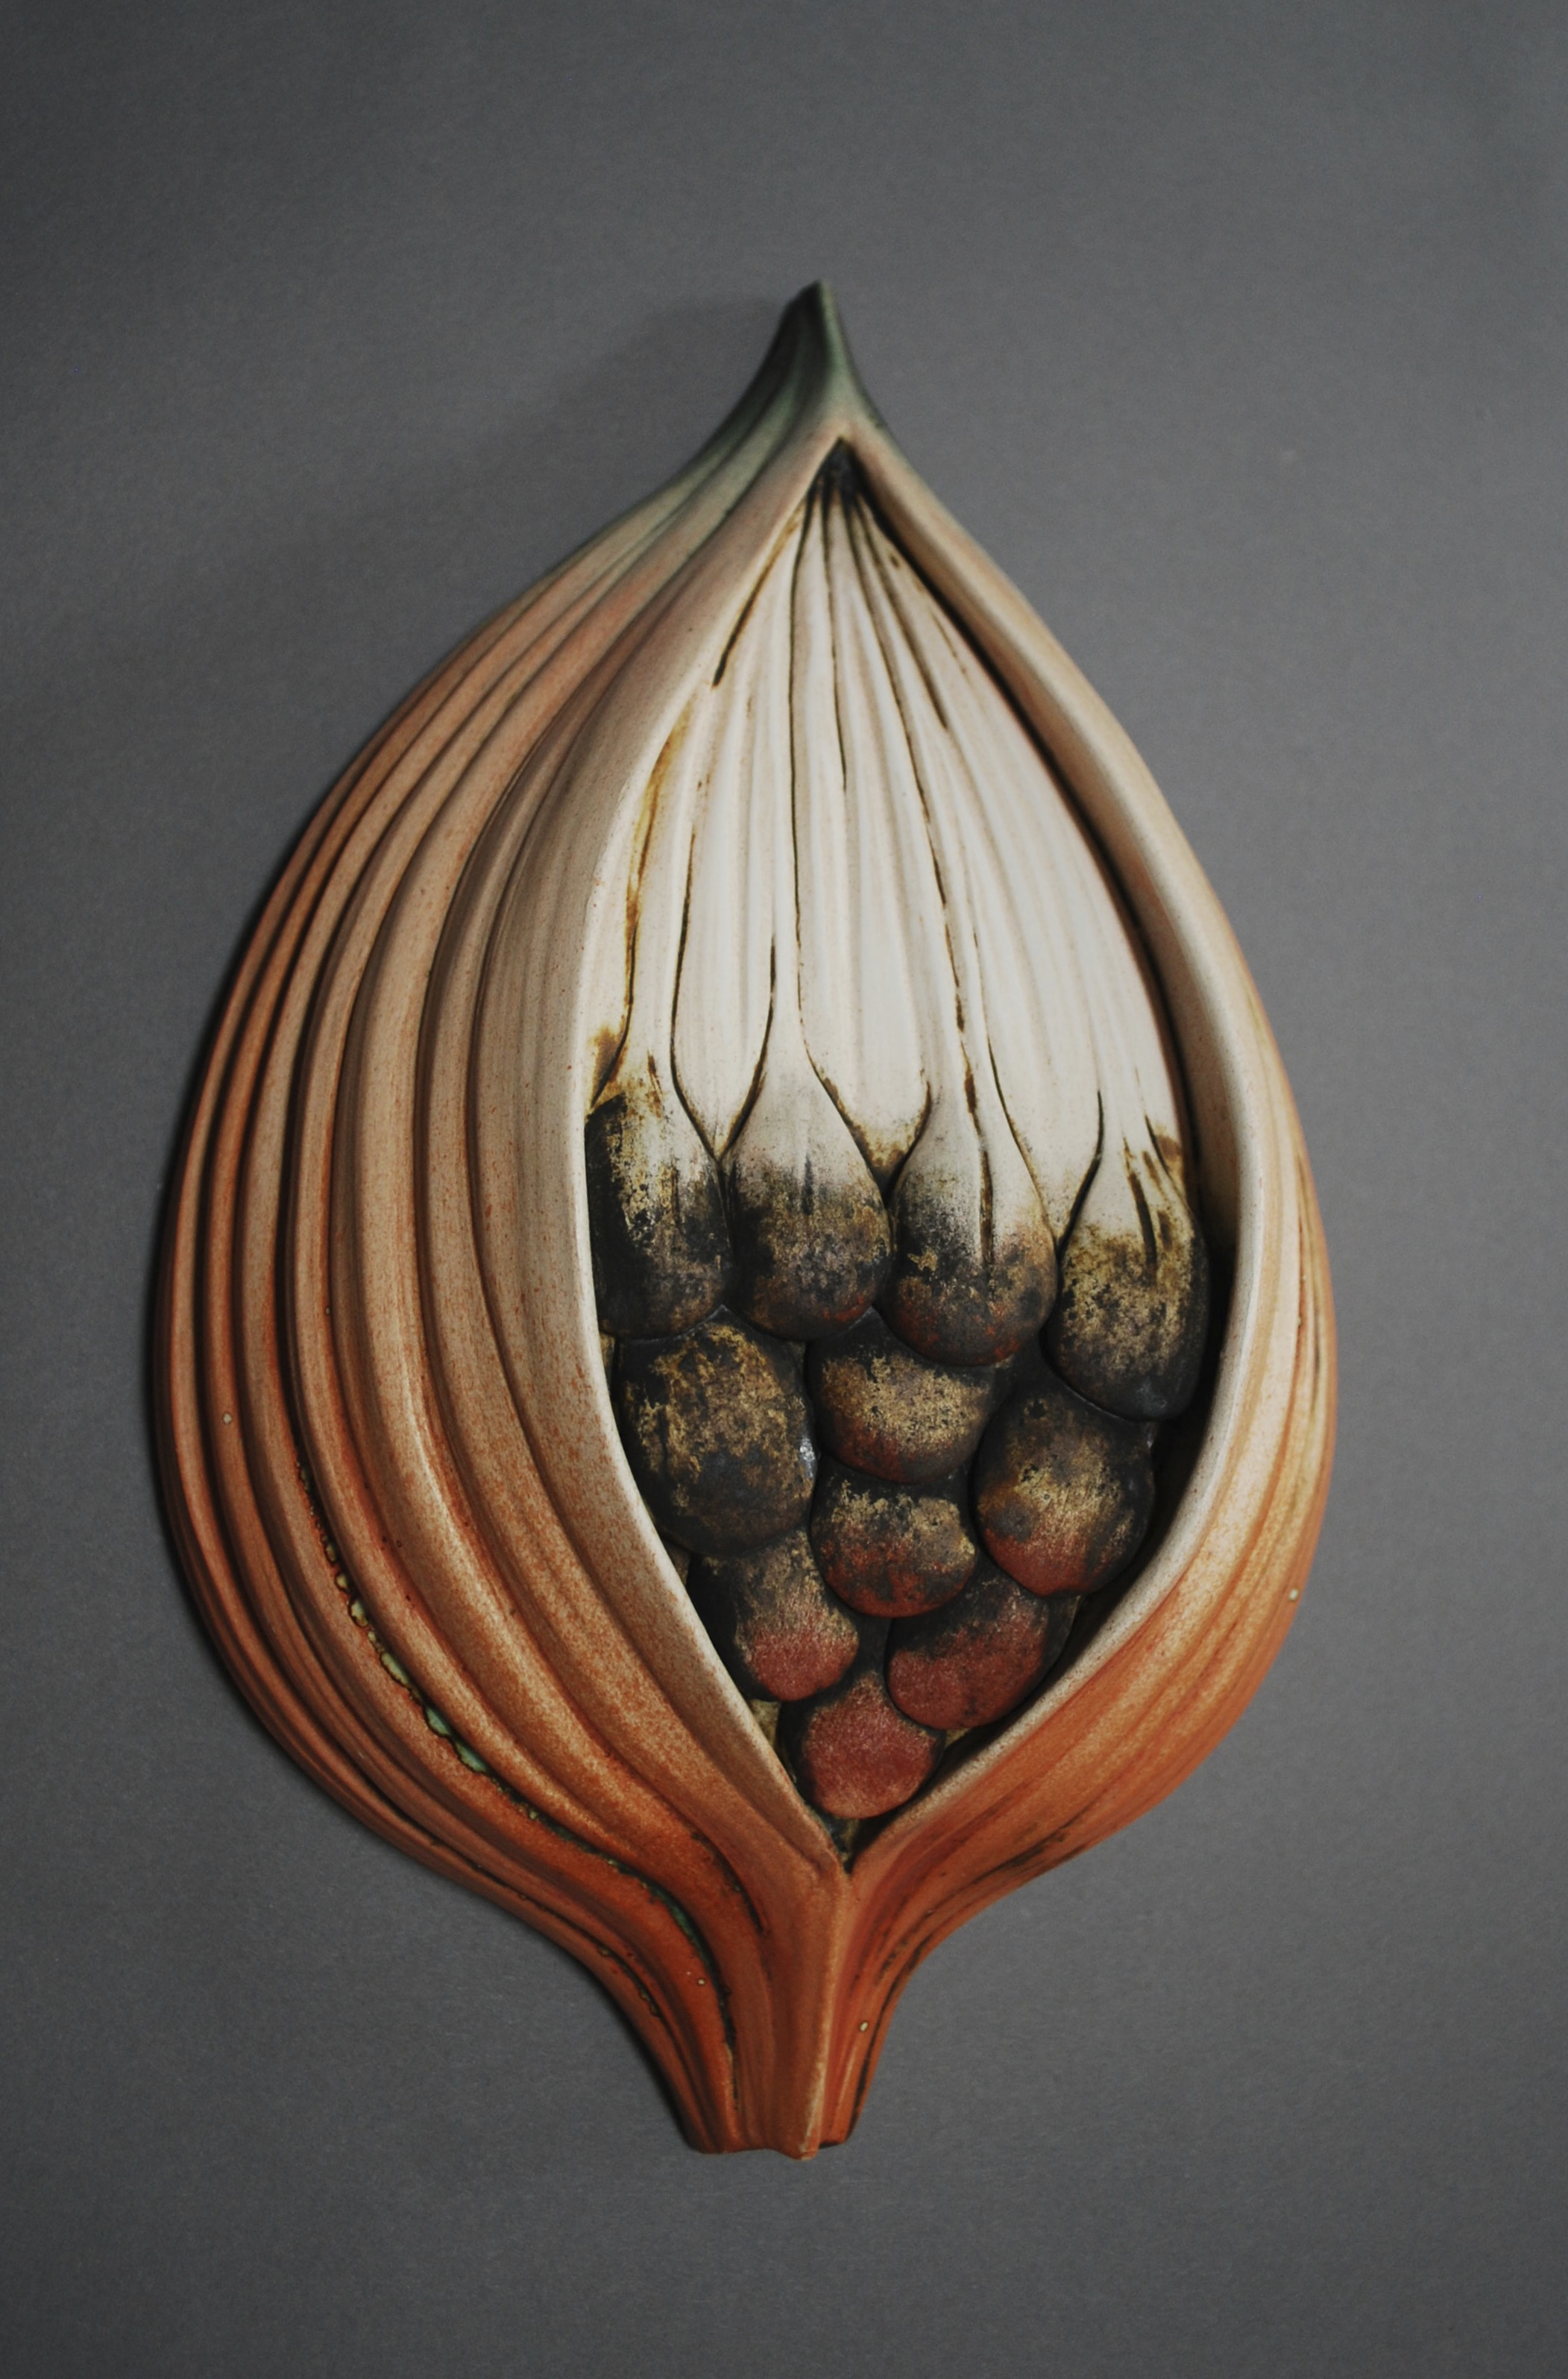 inspired by the milkweed pod